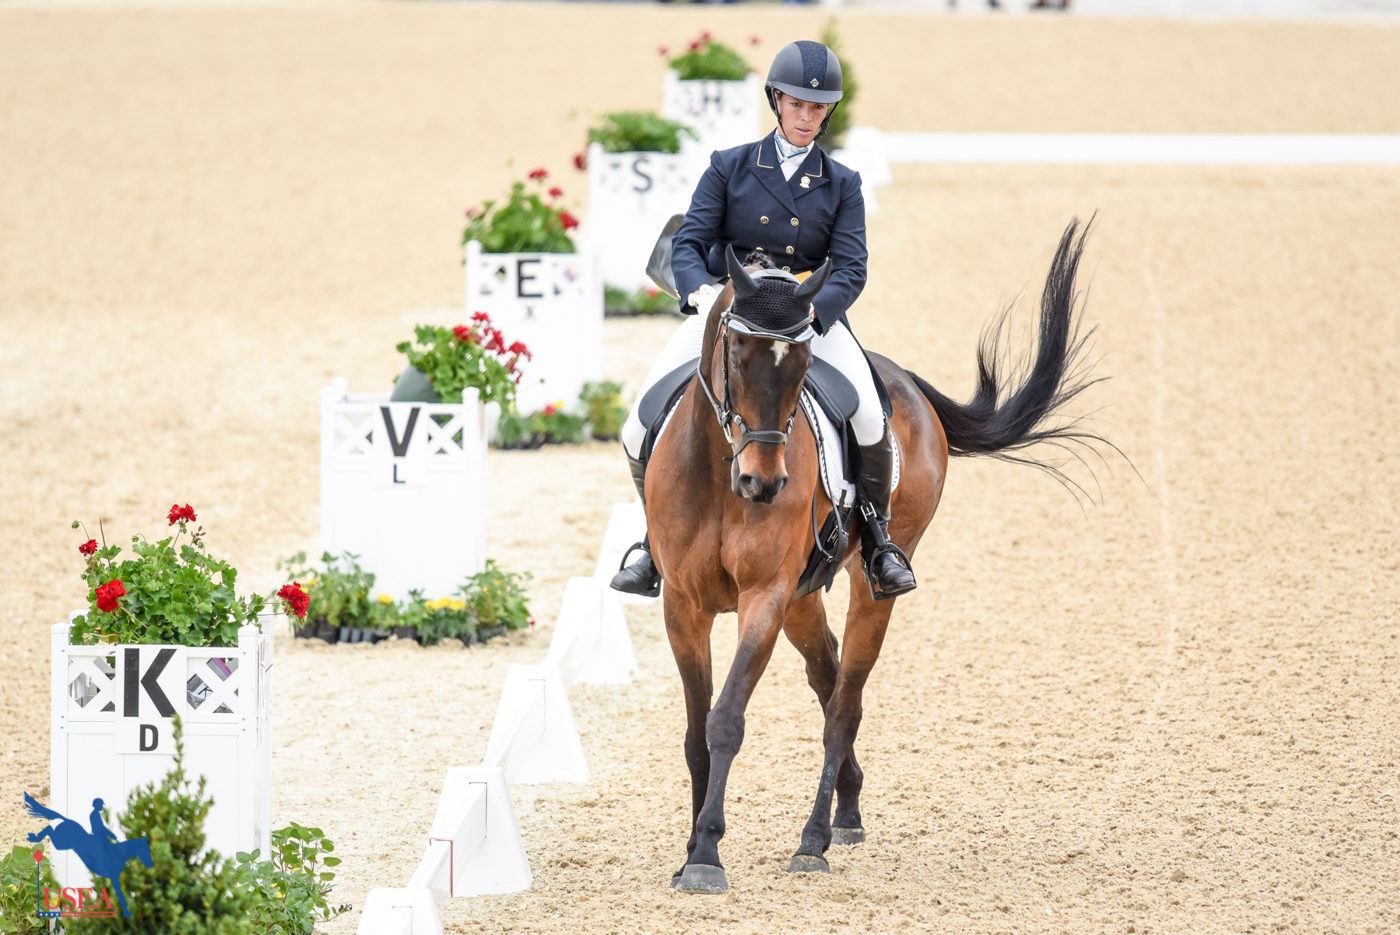 8thT - Ellen Doughty-Hume and Sir Oberon - 36.2